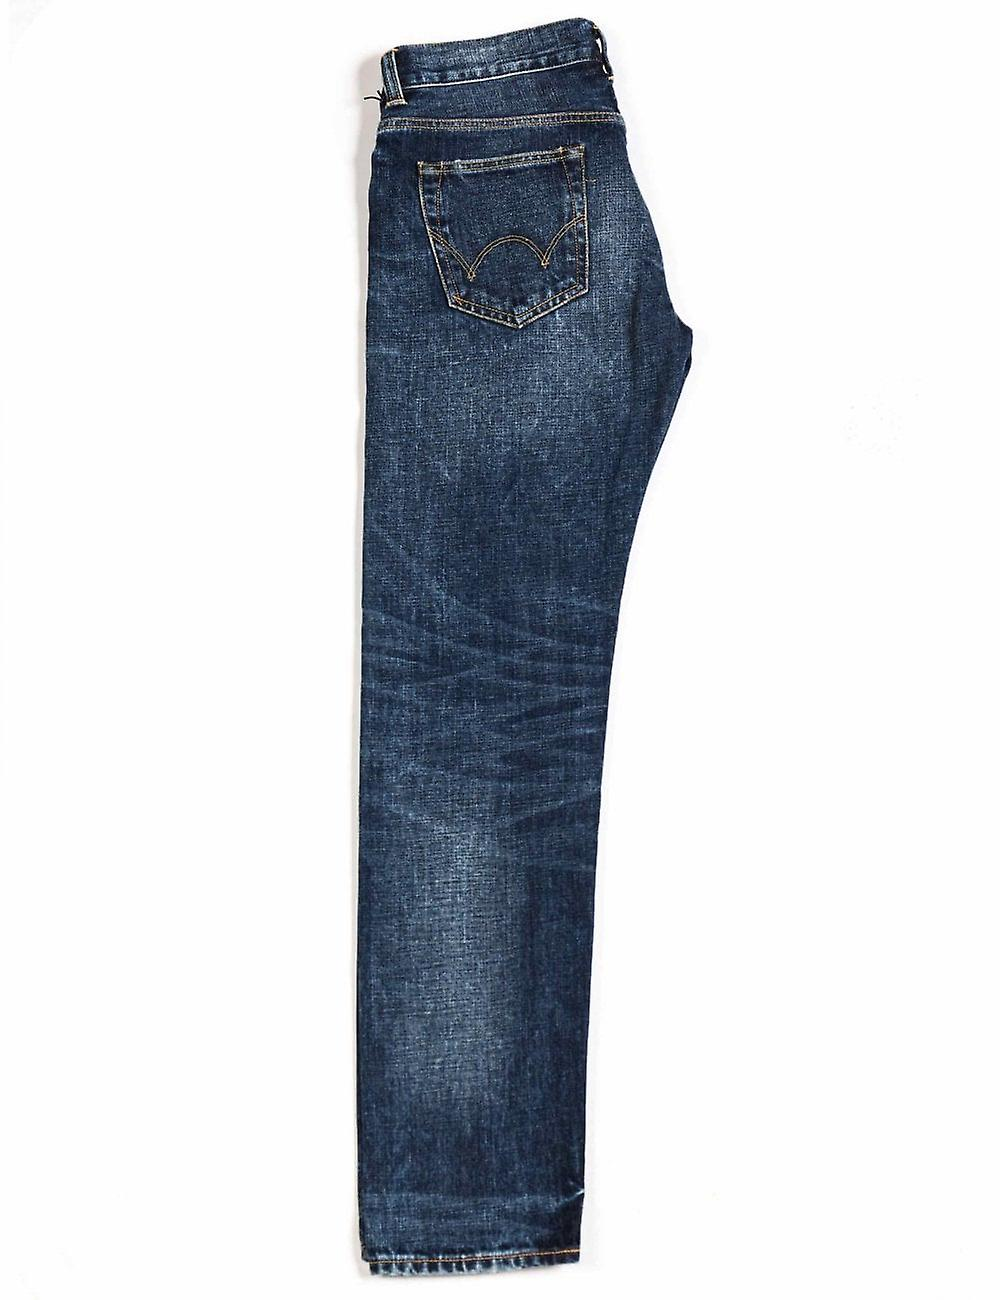 Edwin Jeans Ed-80 Slim Tapered Red Selvedge Denim - Contrast Clean Wash